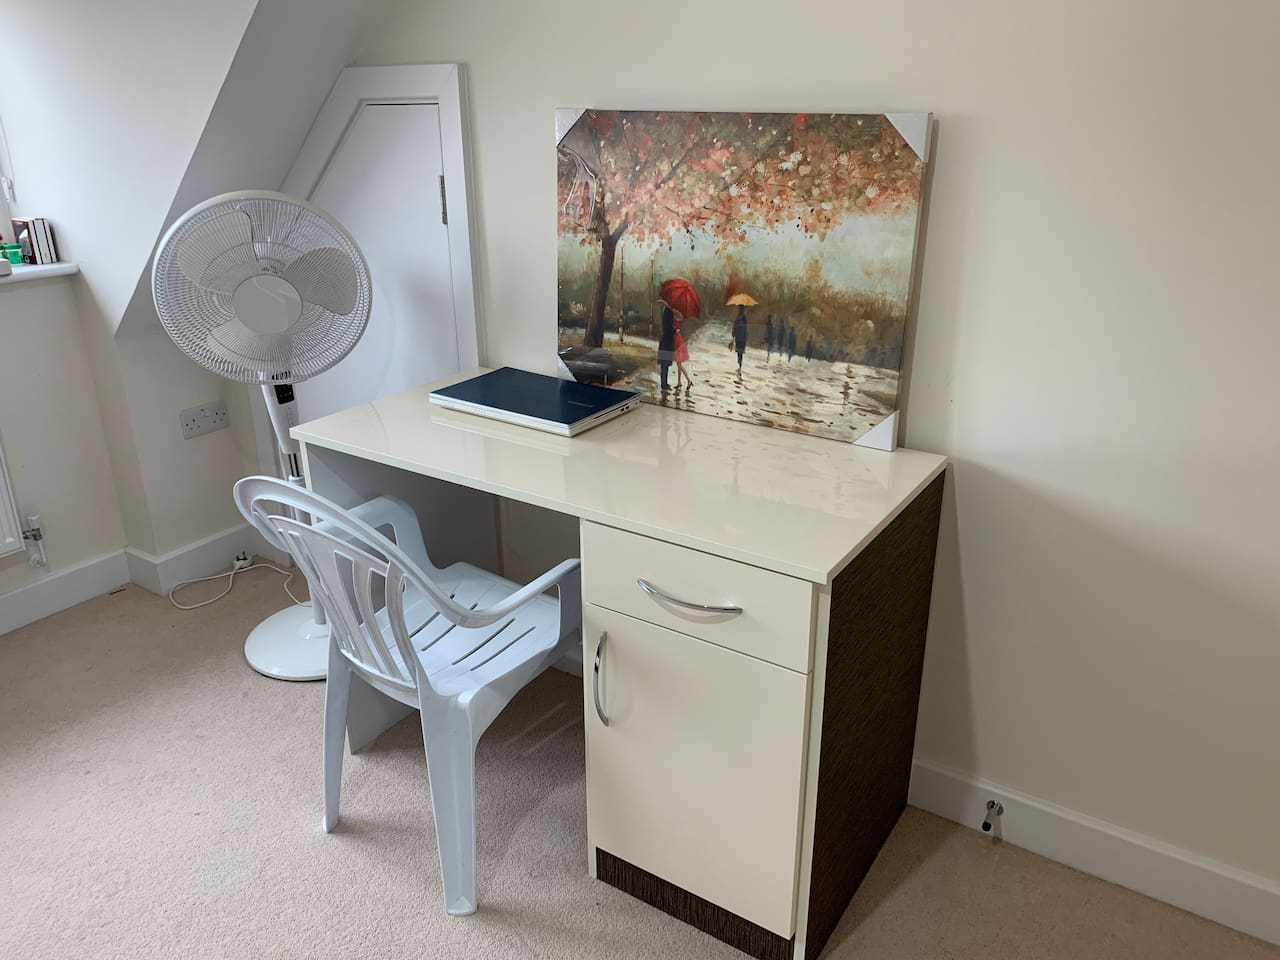 Ivory Glossy Work Table with Chair and Fan